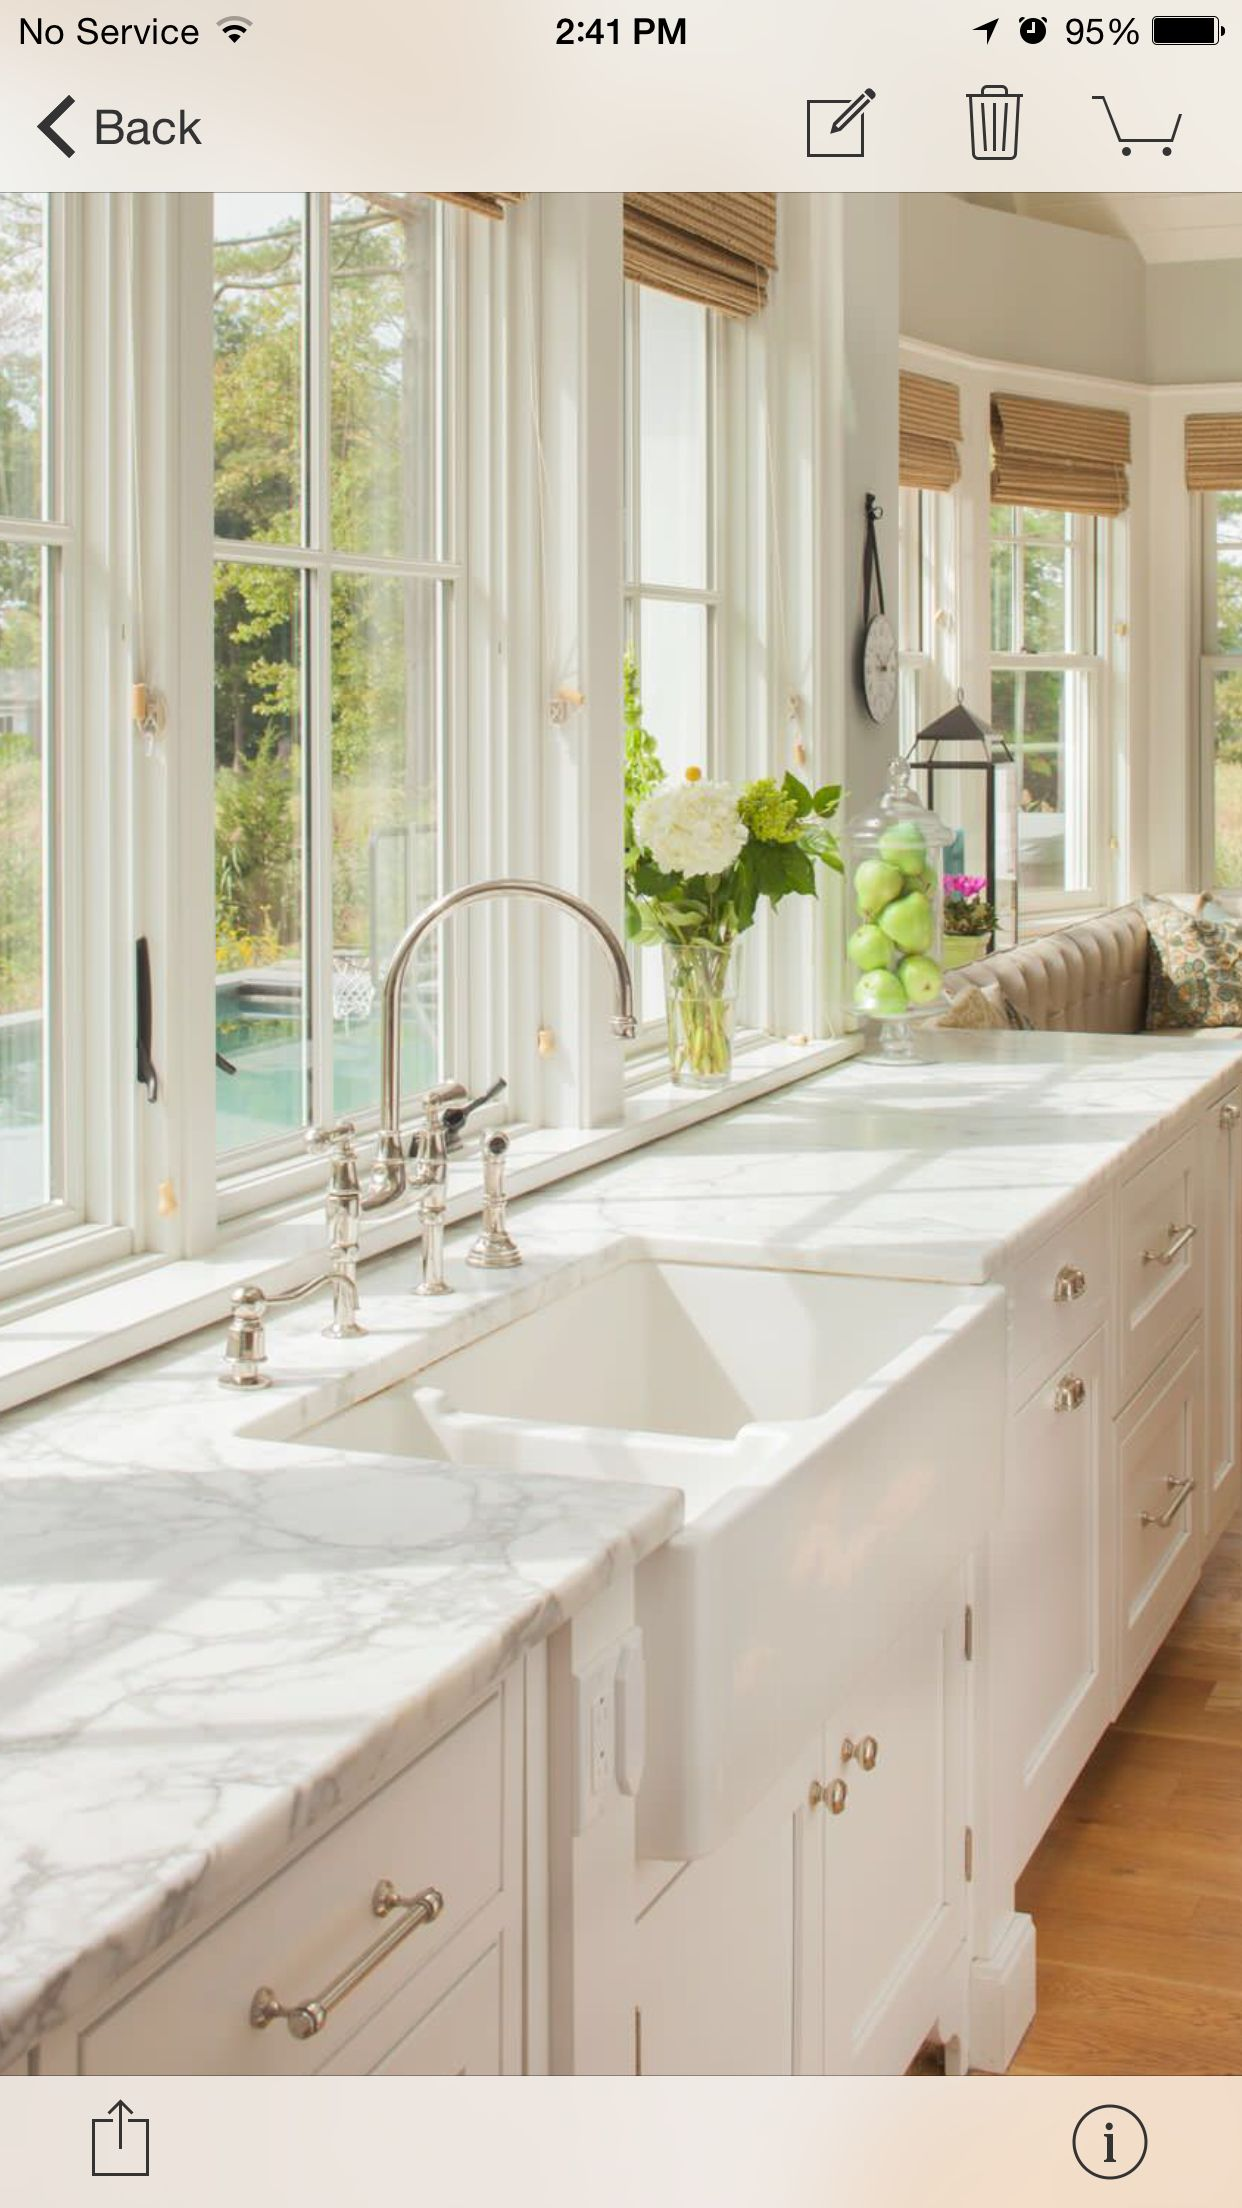 Apron sink | Home - Kitchen | Pinterest | Apron sink, Apron and Sinks